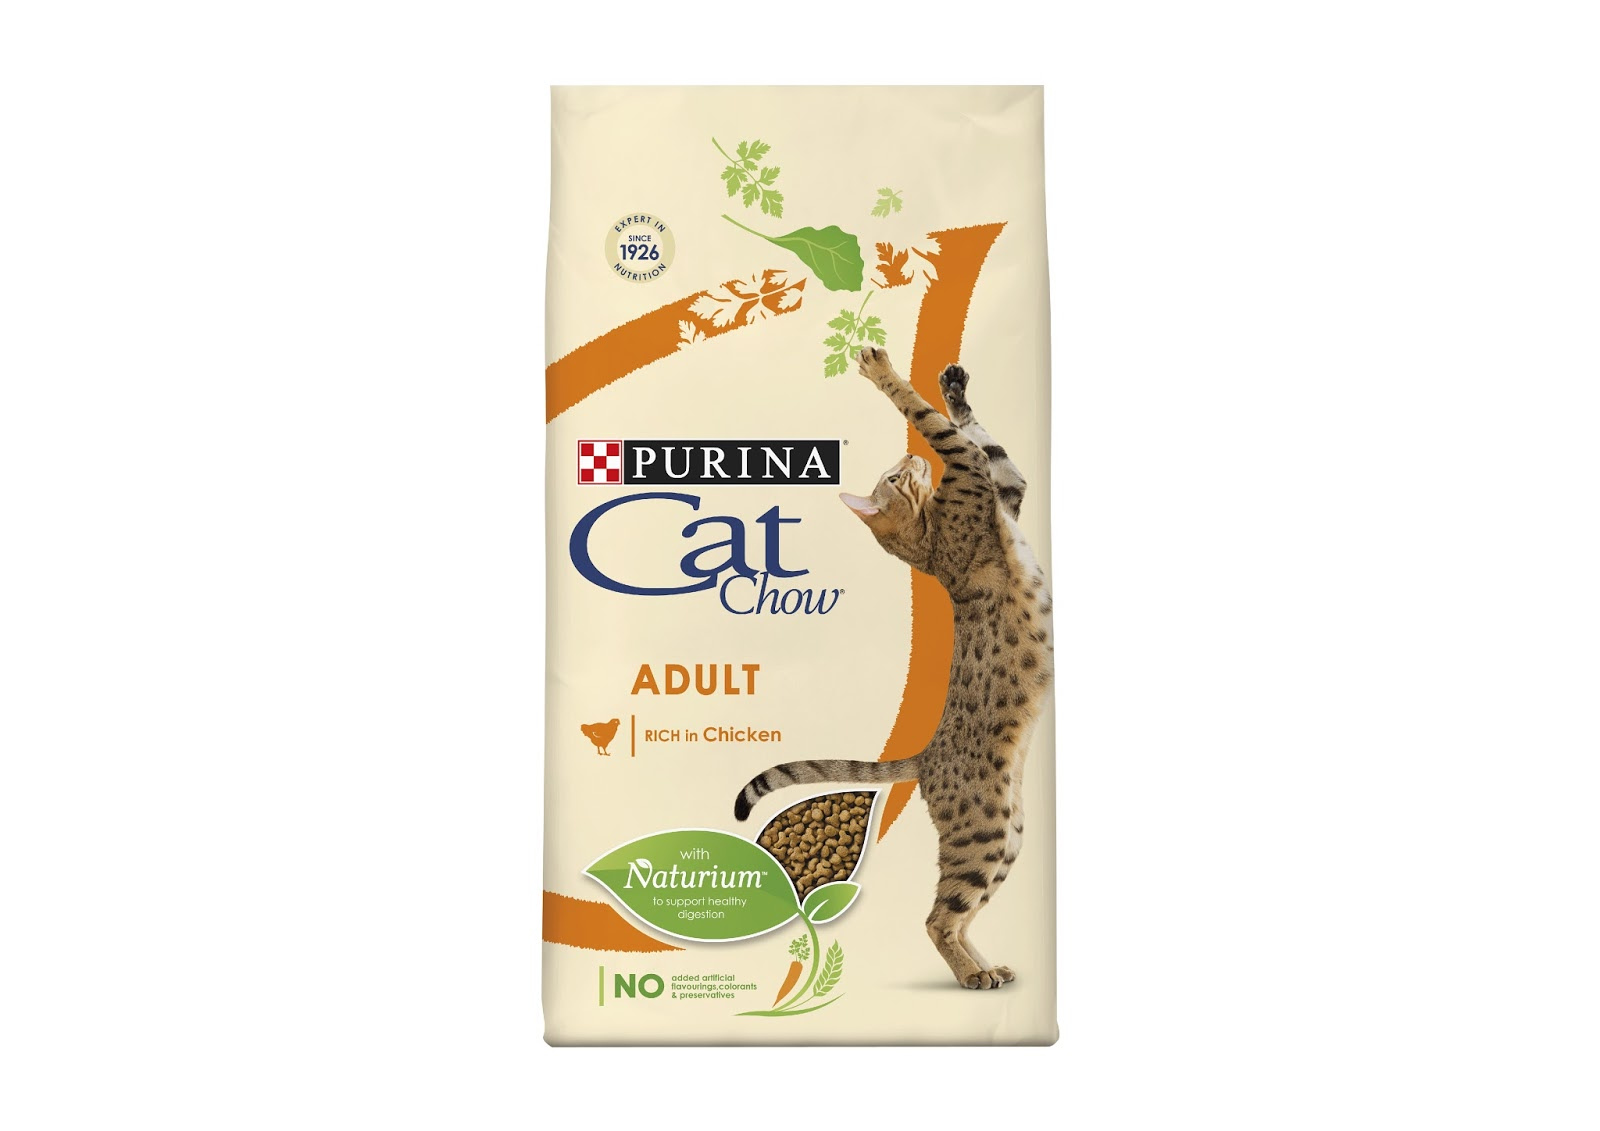 Purina Cat Food Commercial